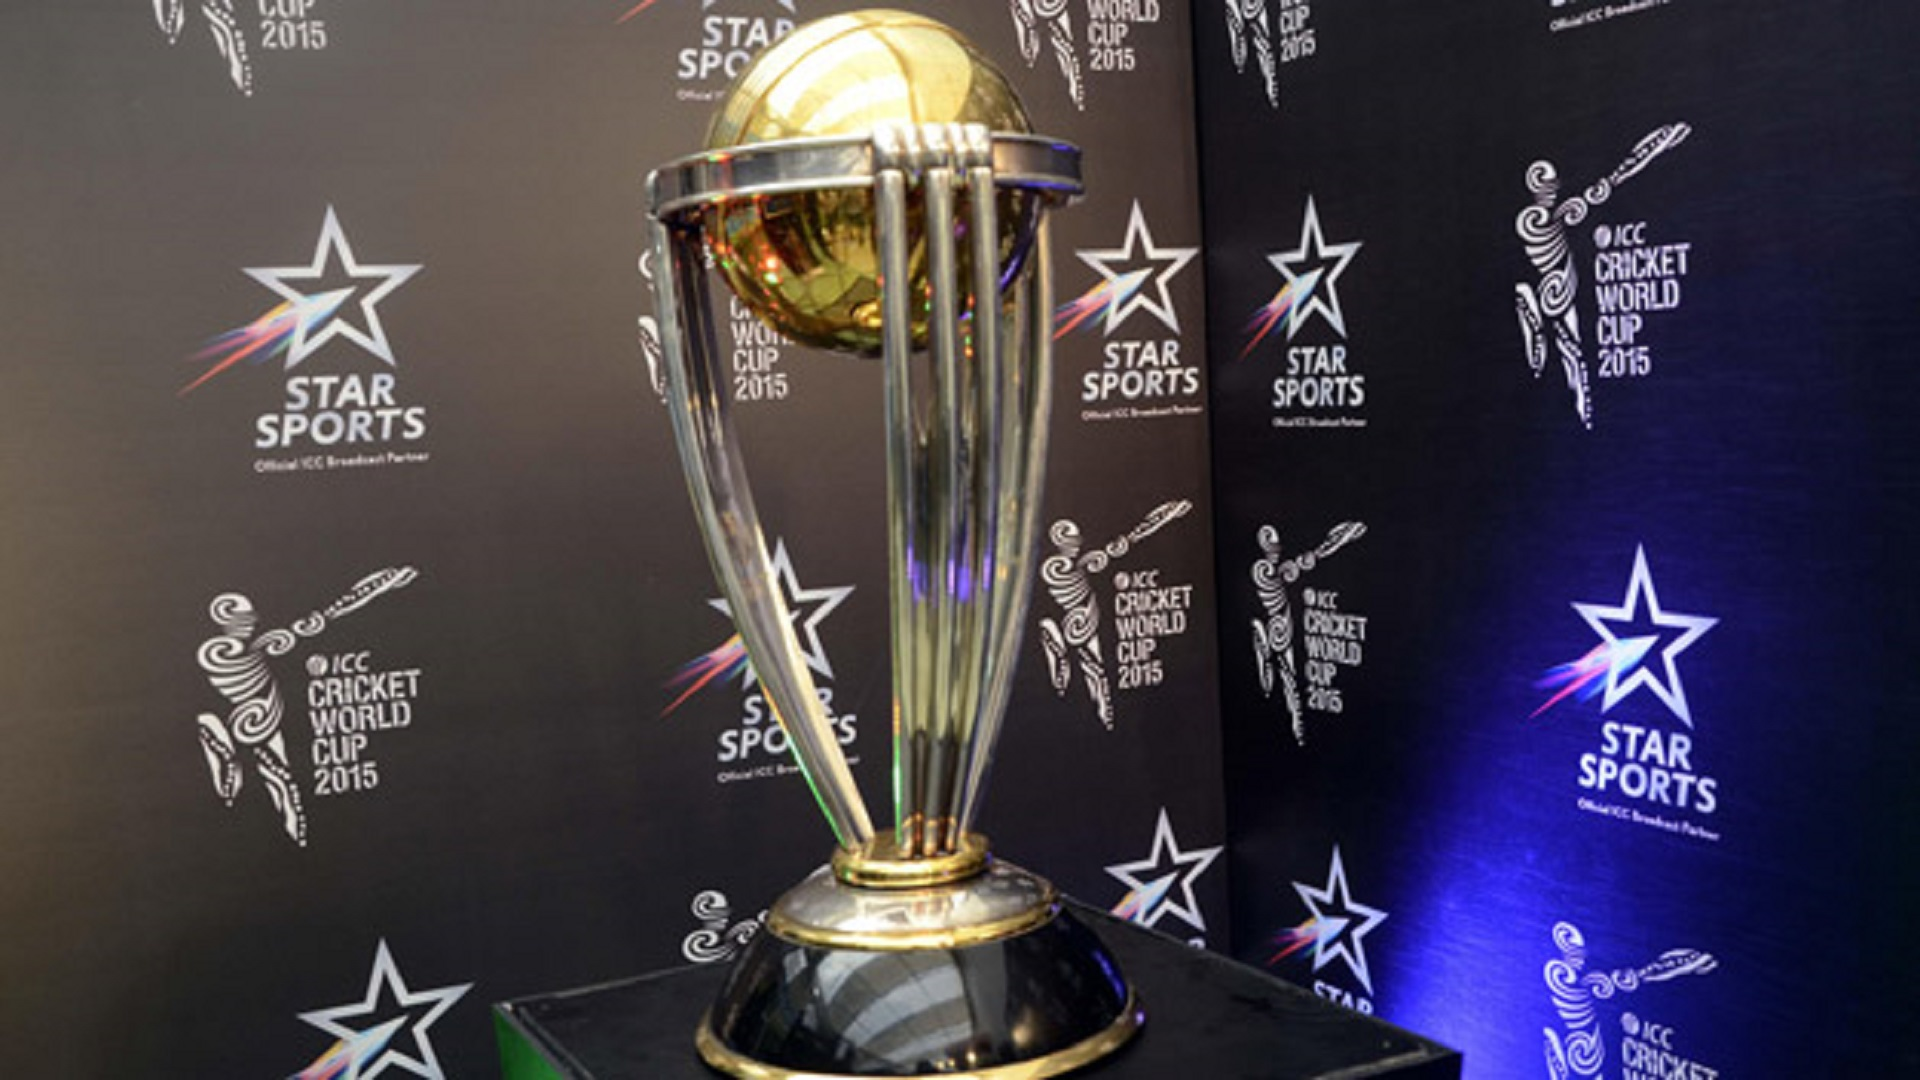 Icc Cricket World Cup Trophy Wallpaper Hd Free Cricket World Cup 2019 Hd 844703 Hd Wallpaper Backgrounds Download